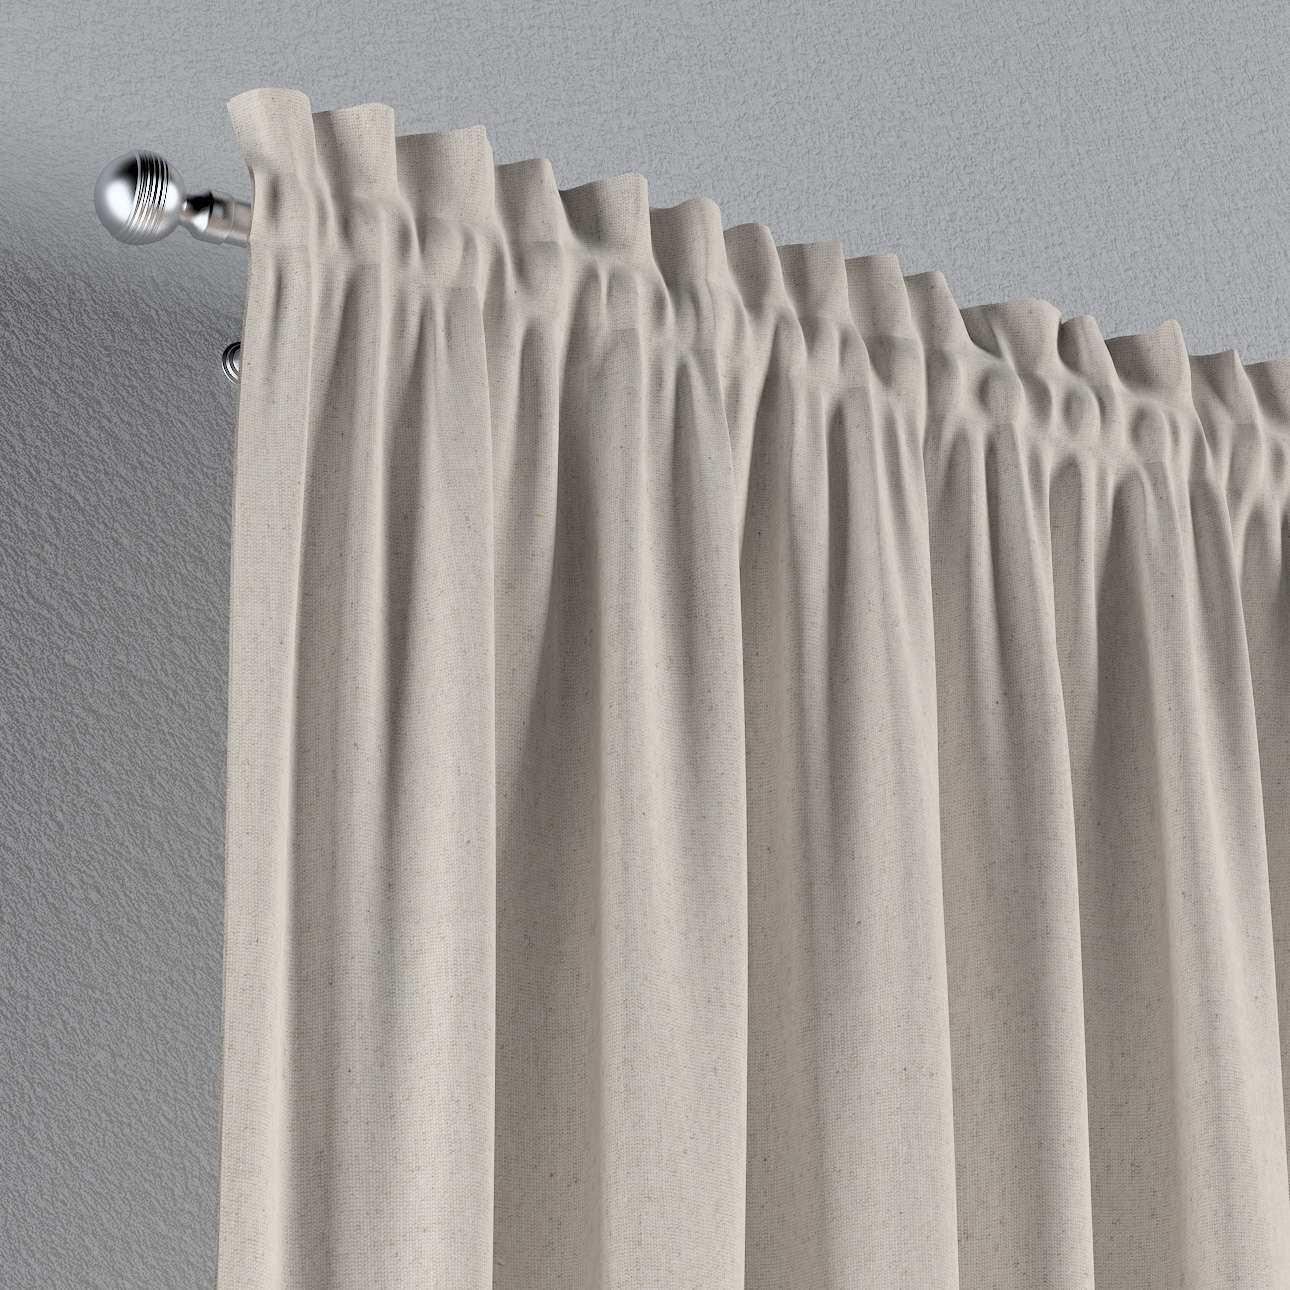 Slot and frill curtains 130 × 260 cm (51 × 102 inch) in collection Loneta , fabric: 133-65